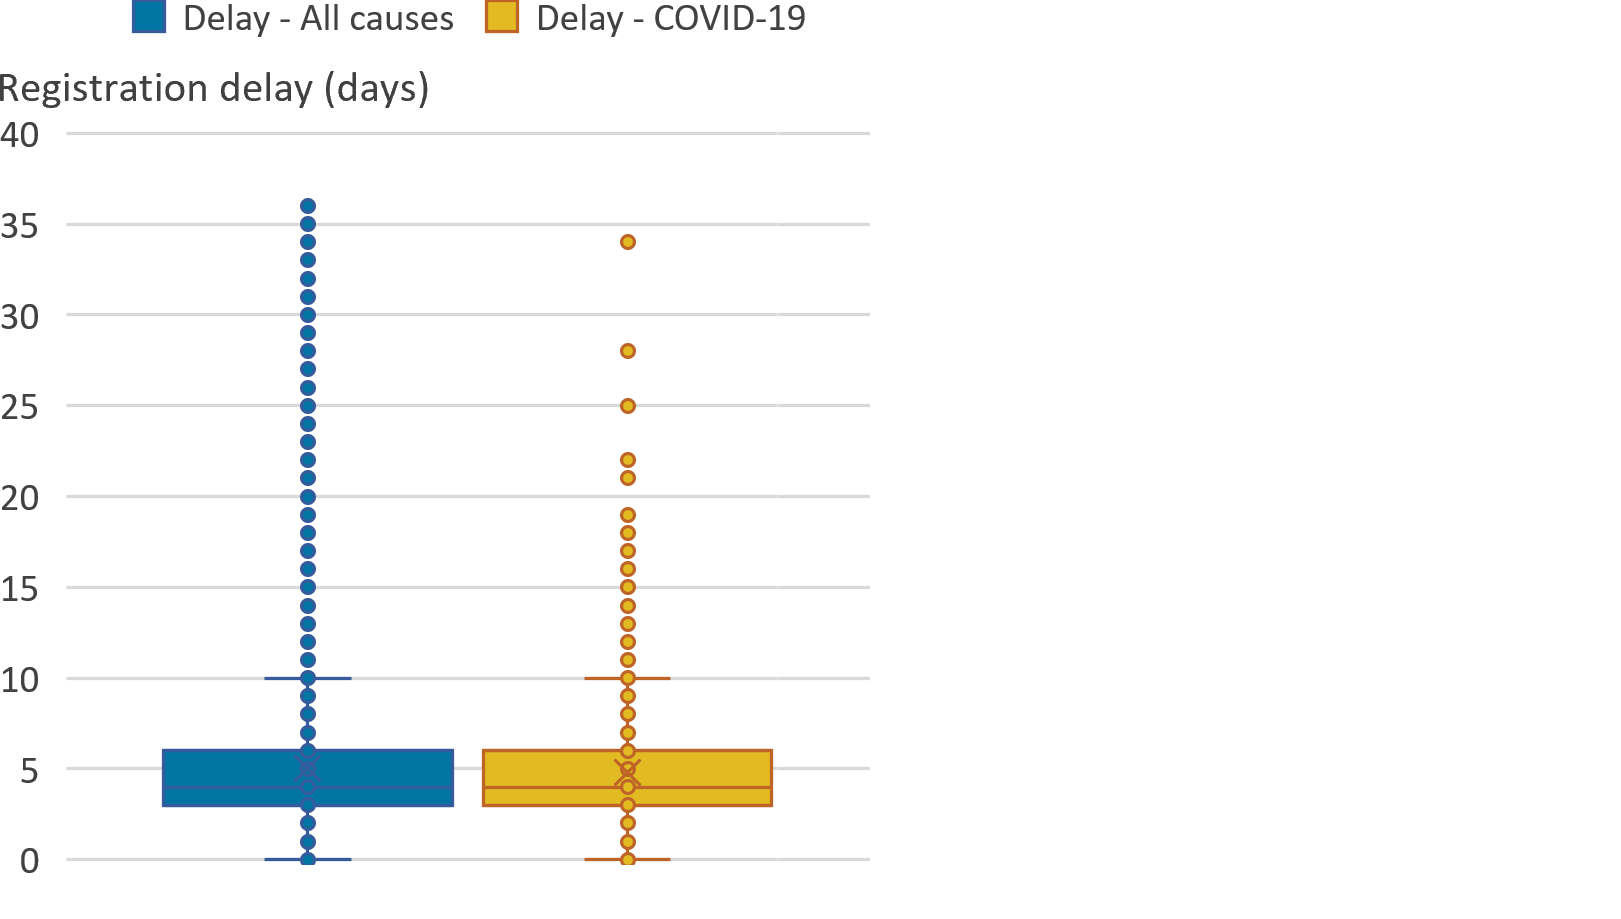 The median delay in registrations for March 2020 was the same for both coronavirus (COVID-19) deaths and all causes of death.